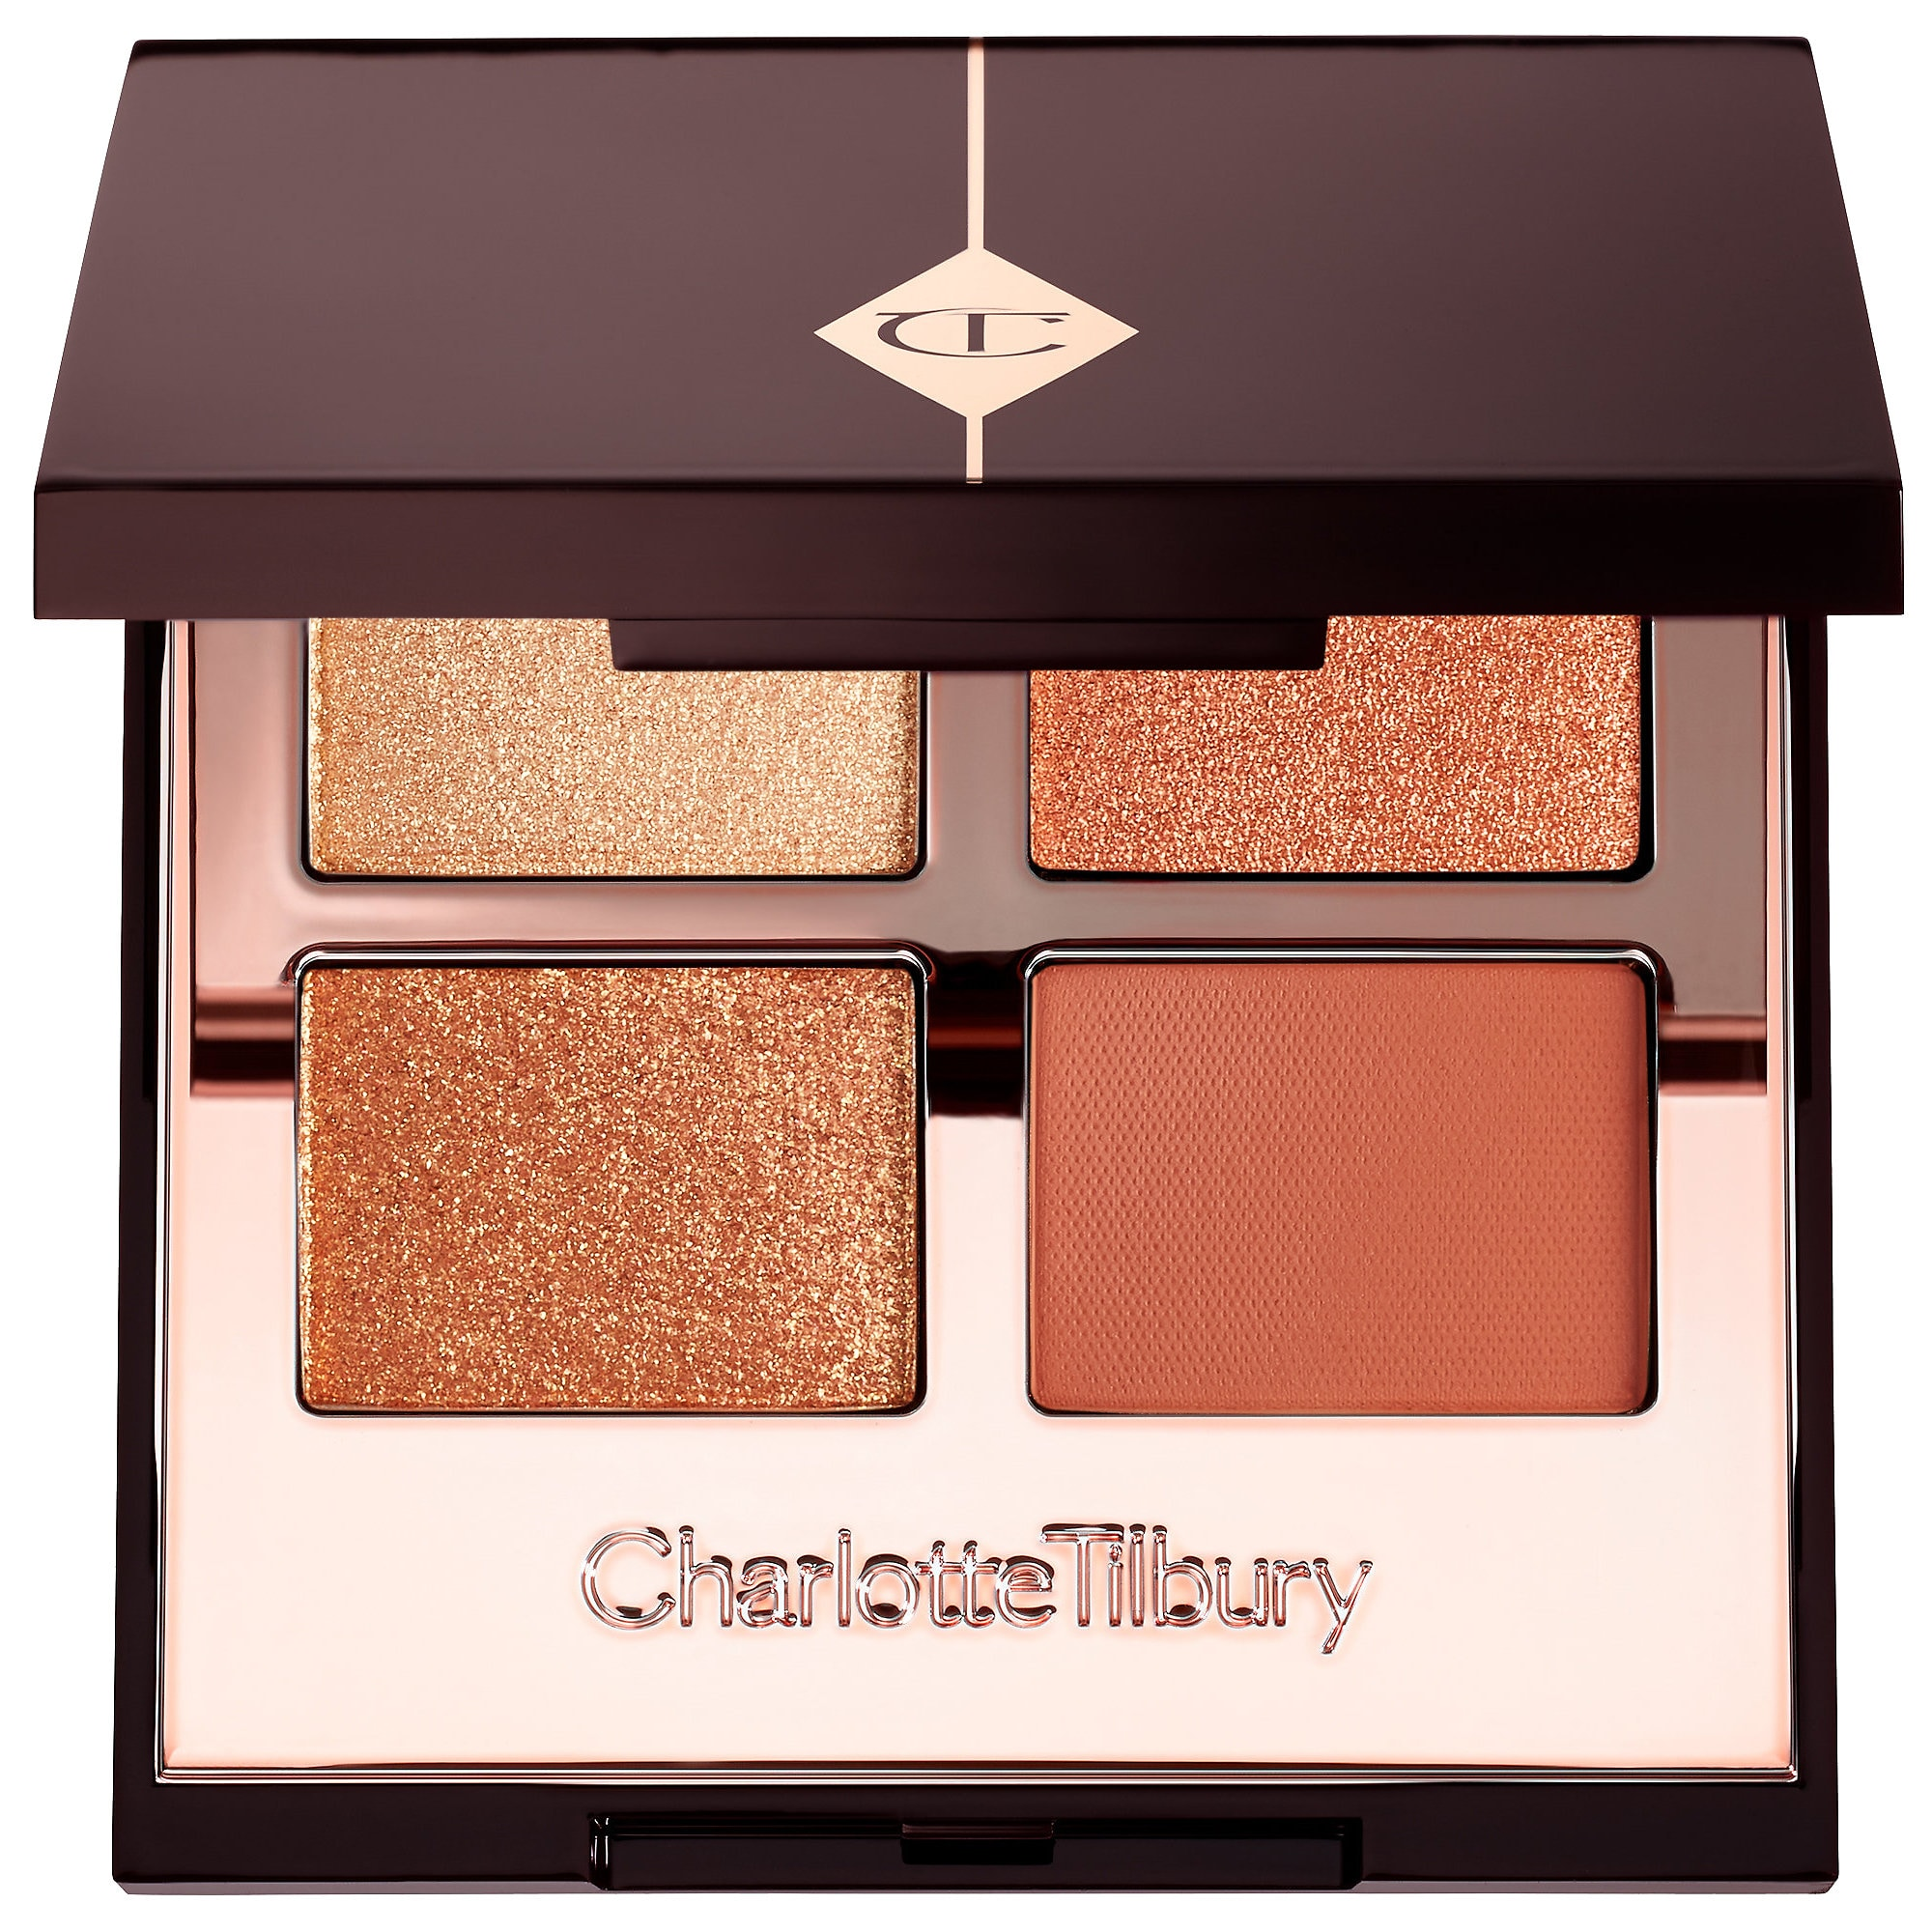 Charlotte Tilbury - Luxury Eyeshadow Palette - Eye Color Magic Collection